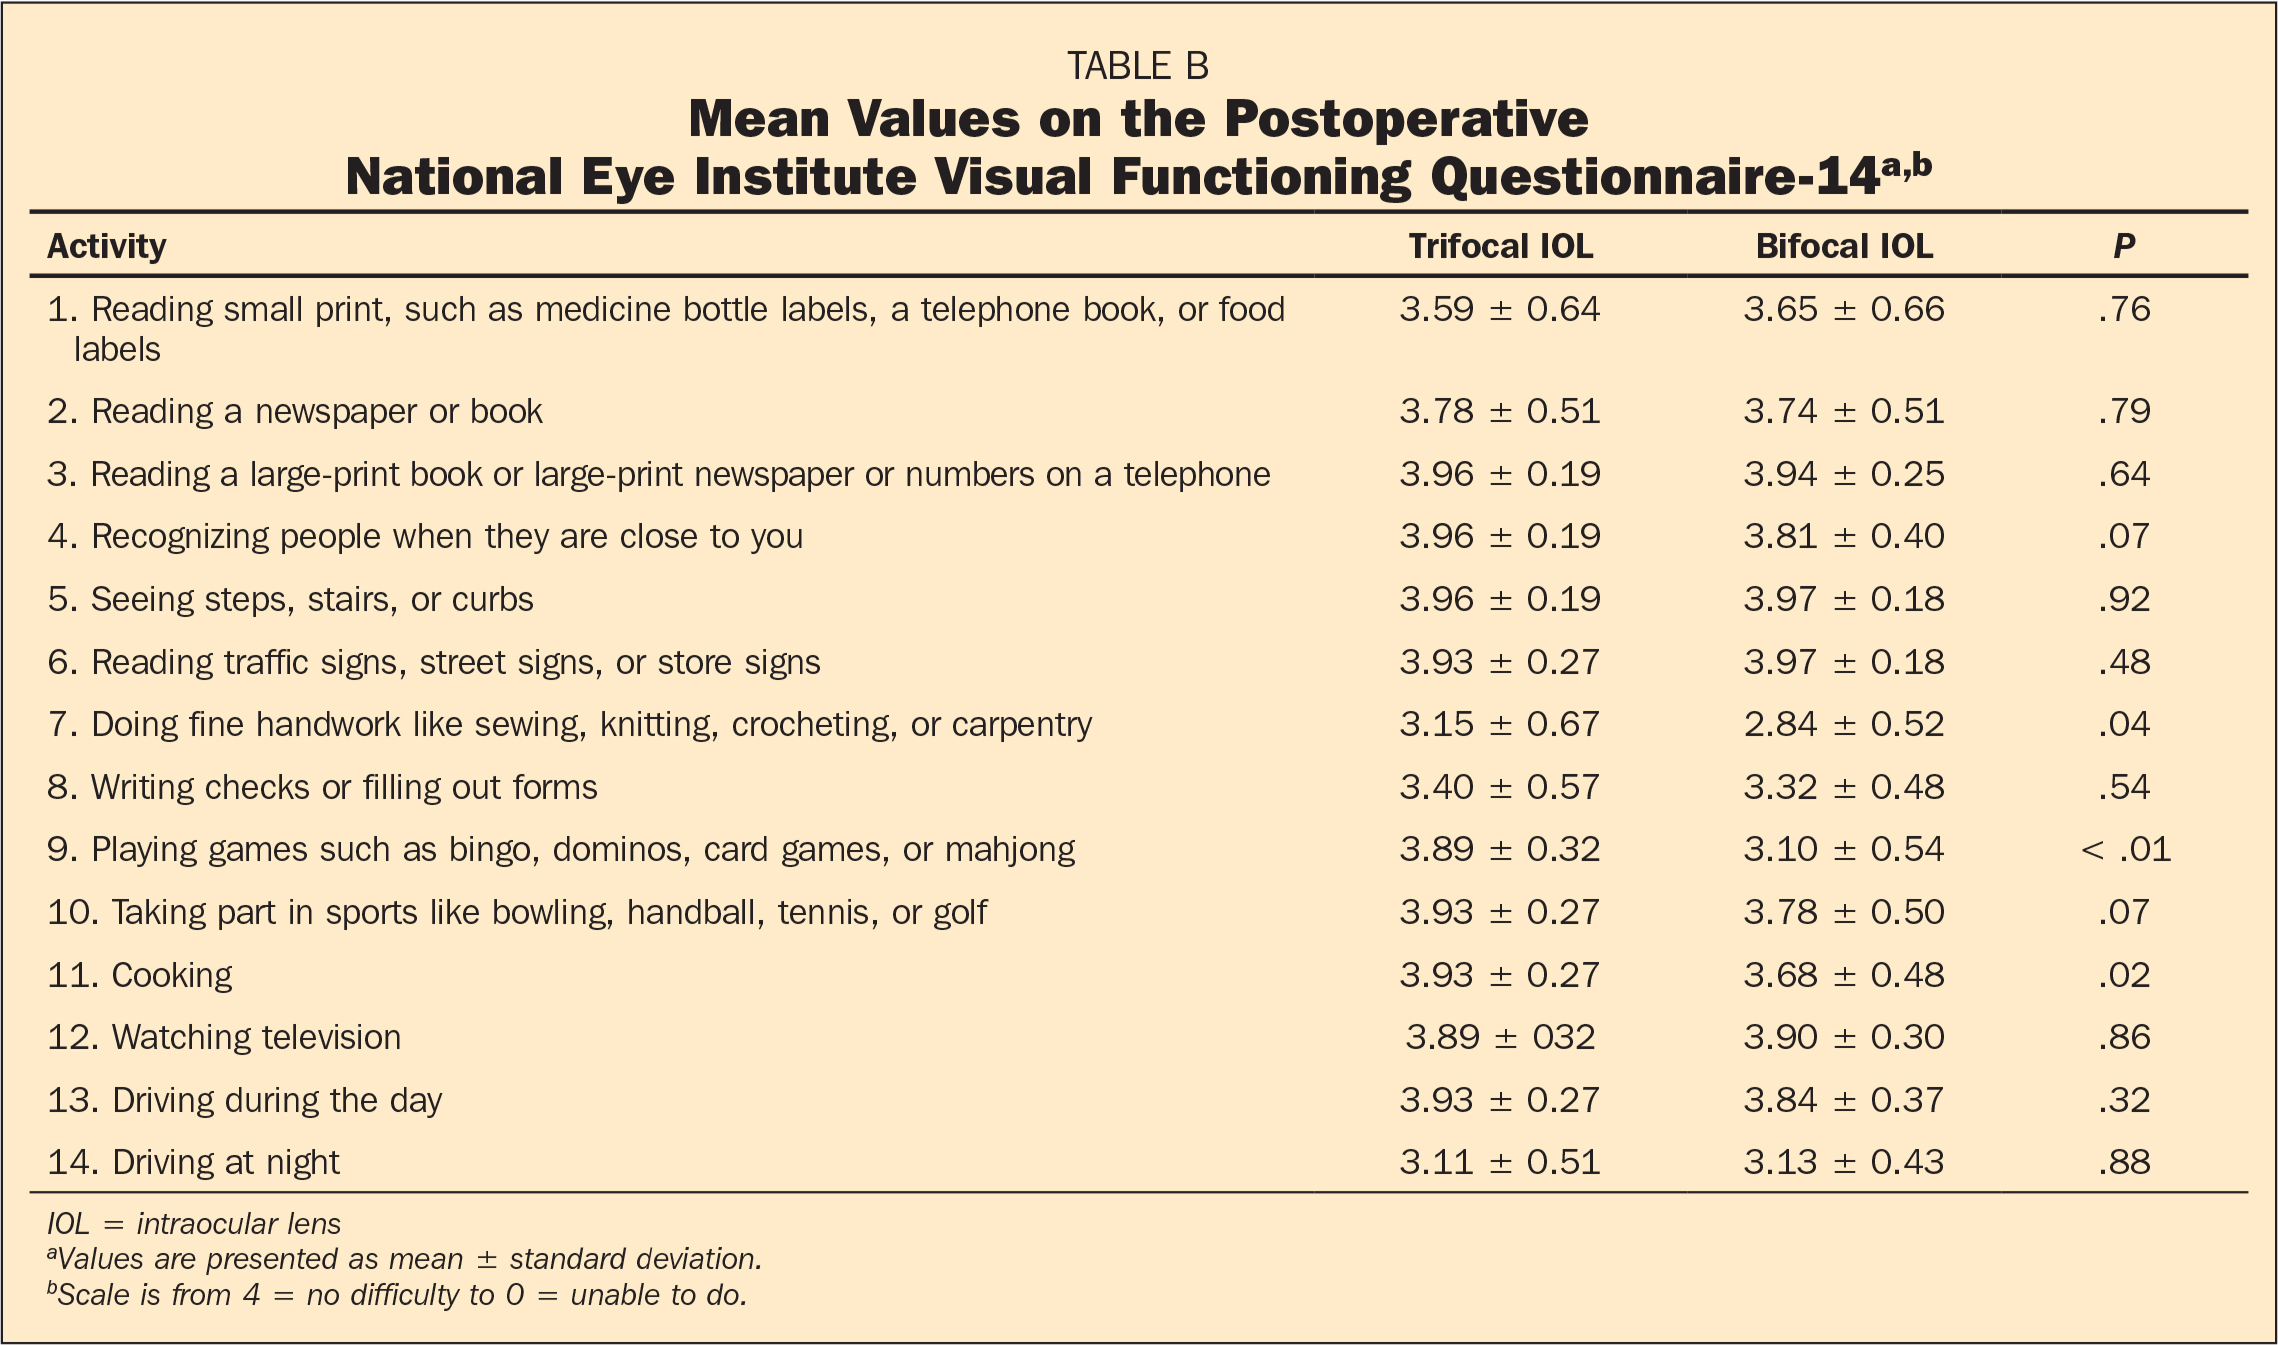 Mean Values on the Postoperative National Eye Institute Visual Functioning Questionnaire-14a,b